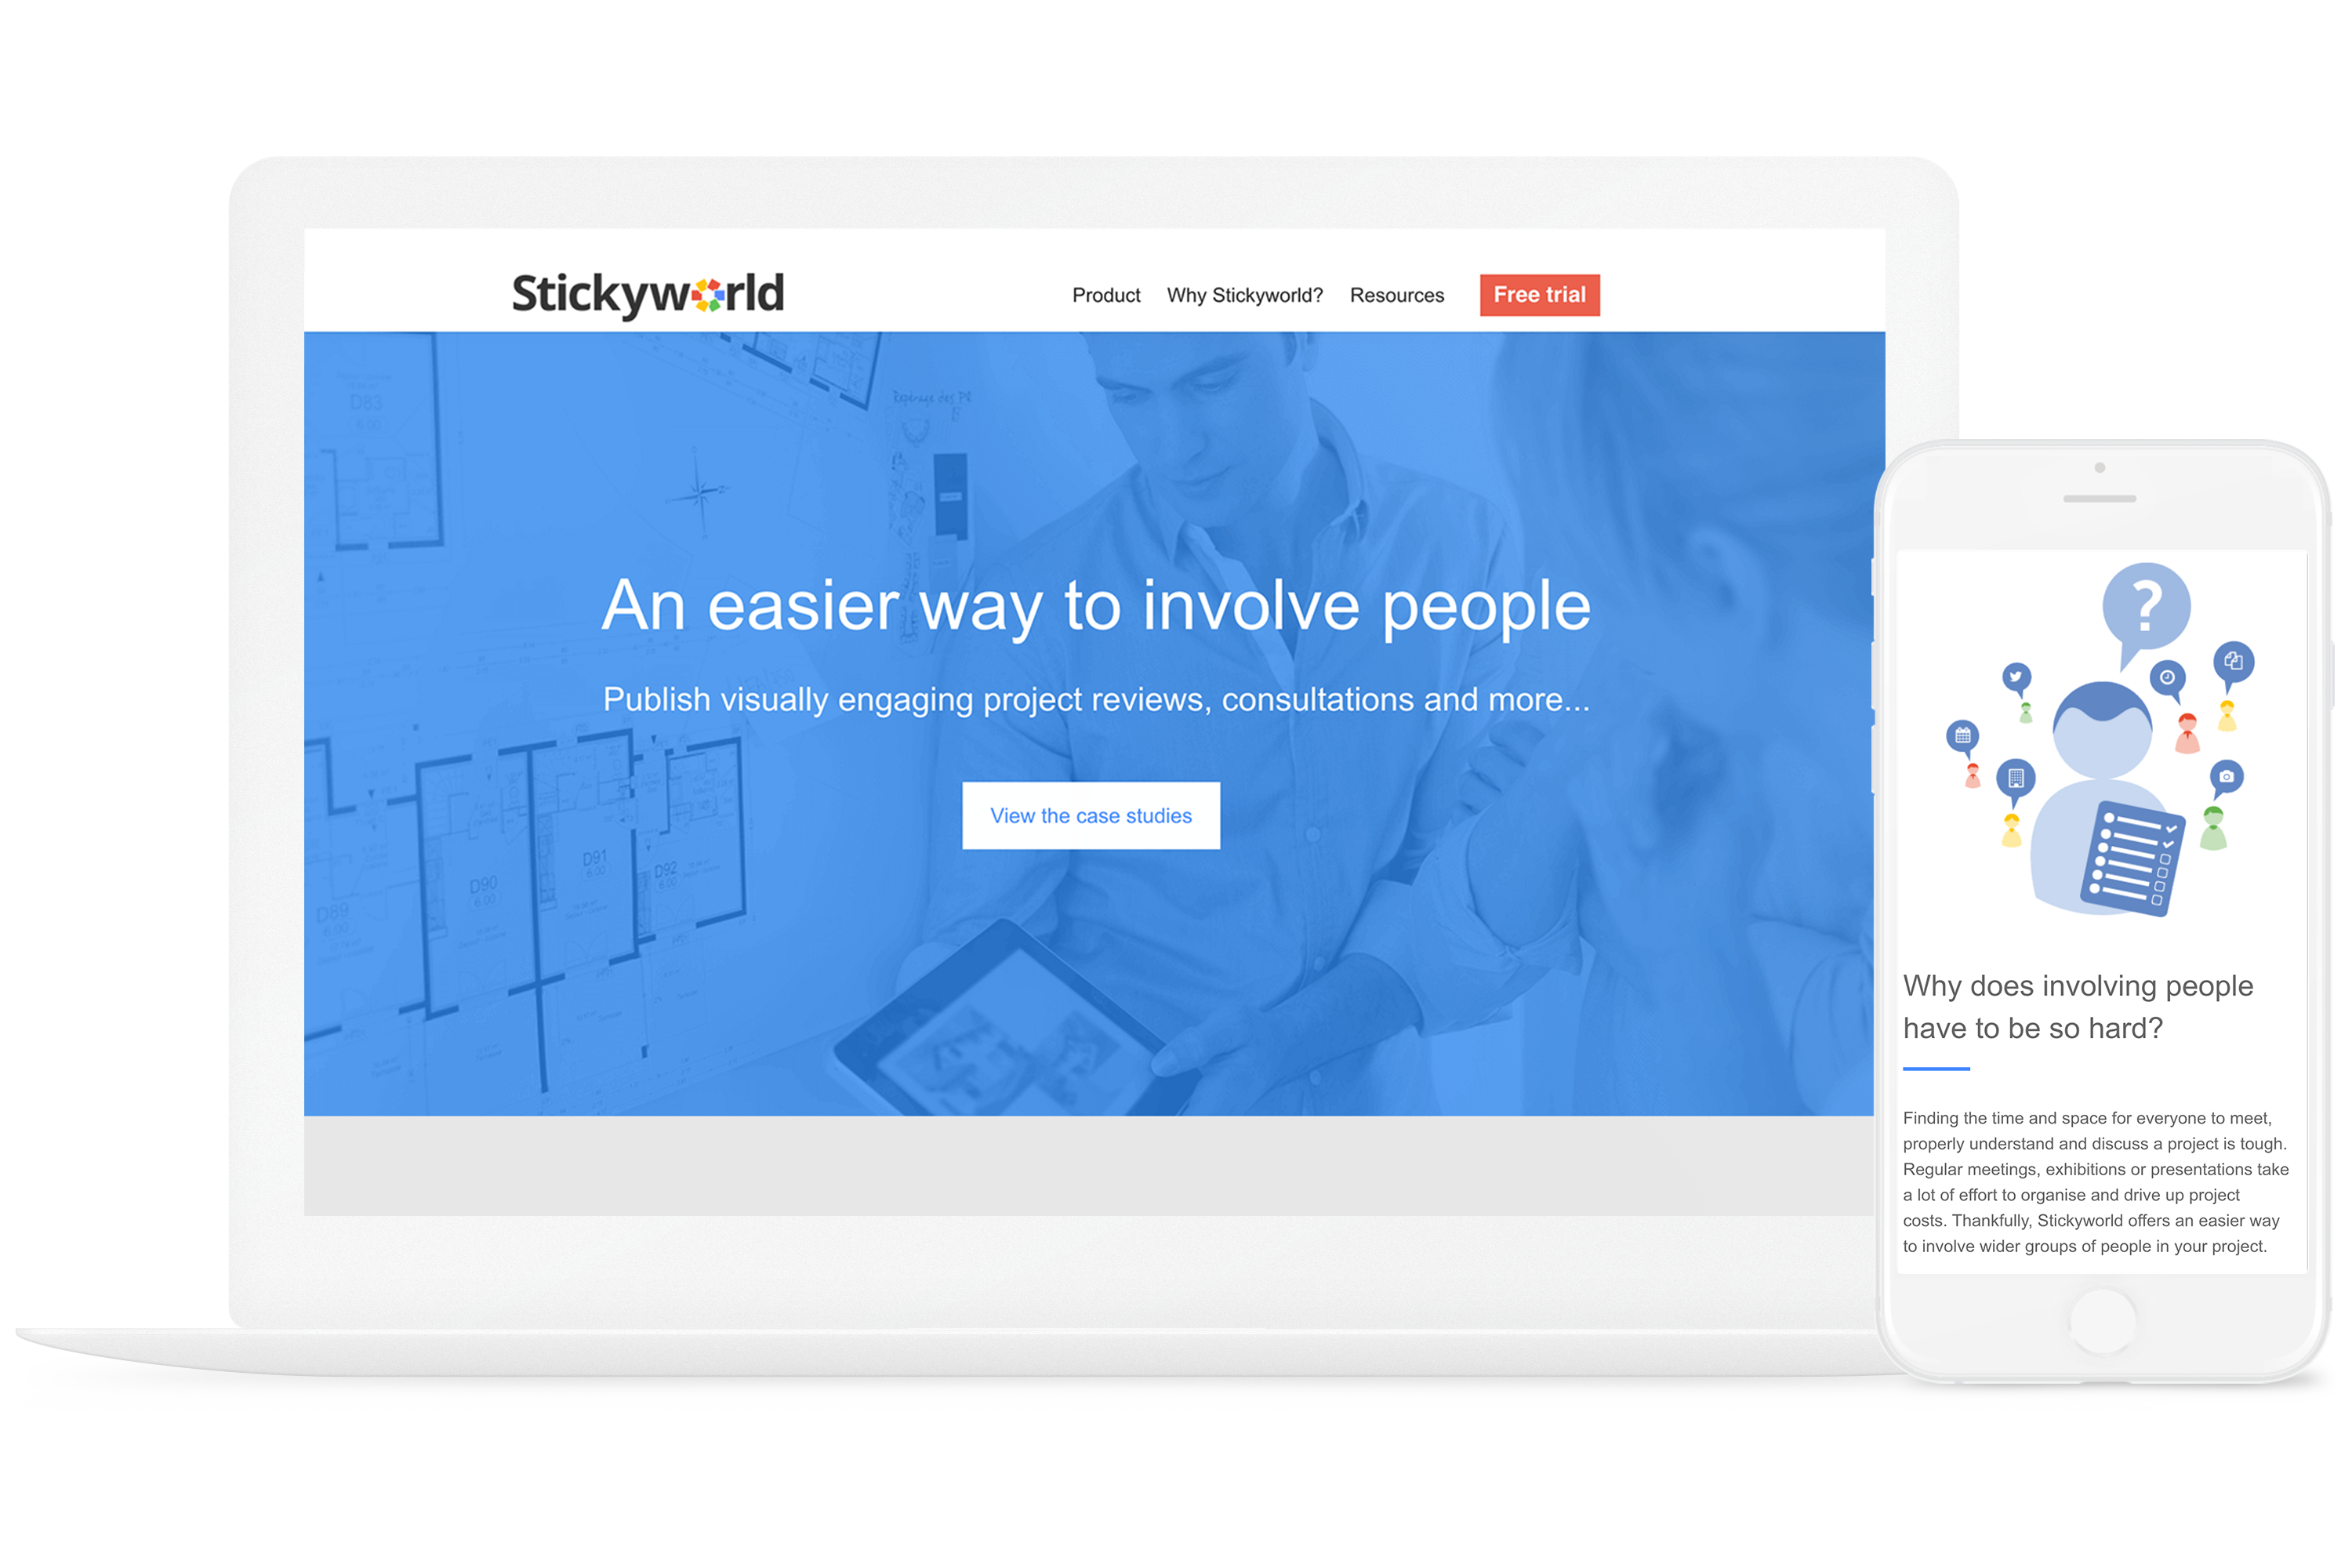 Stickyworld is a SaaS company who saw incredible results when redesigning their website on the COS